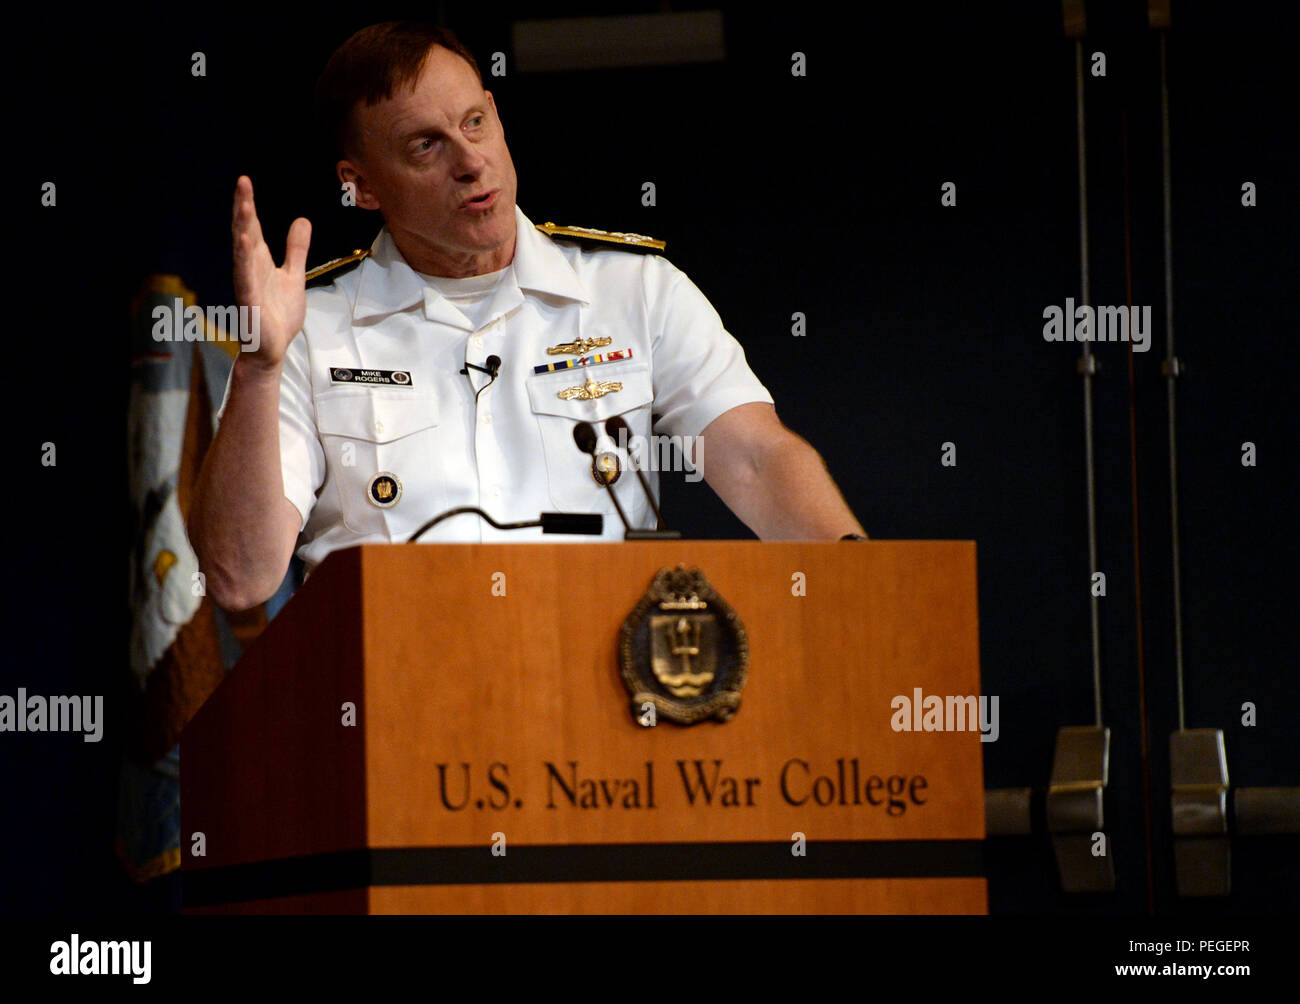 Adm. Michael S. Rogers, commander, U.S. Cyber Command, director, National Security Agency, chief, Central Security Service, provides a keynote address to students, staff, faculty and guests during a convocation ceremony kicking-off the 2015-2016 school year at NWC in Nepwort, Rhode Island. During the ceremony, Rogers provided a keynote address and was presented NWC's 2015 Distinguished Graduate Leadership Award.  The award honors NWC graduates who have earned positions of prominence in the national defense field.  (U.S. Navy photo by Chief Mass Communication Specialist James E. Foehl/Released) - Stock Image